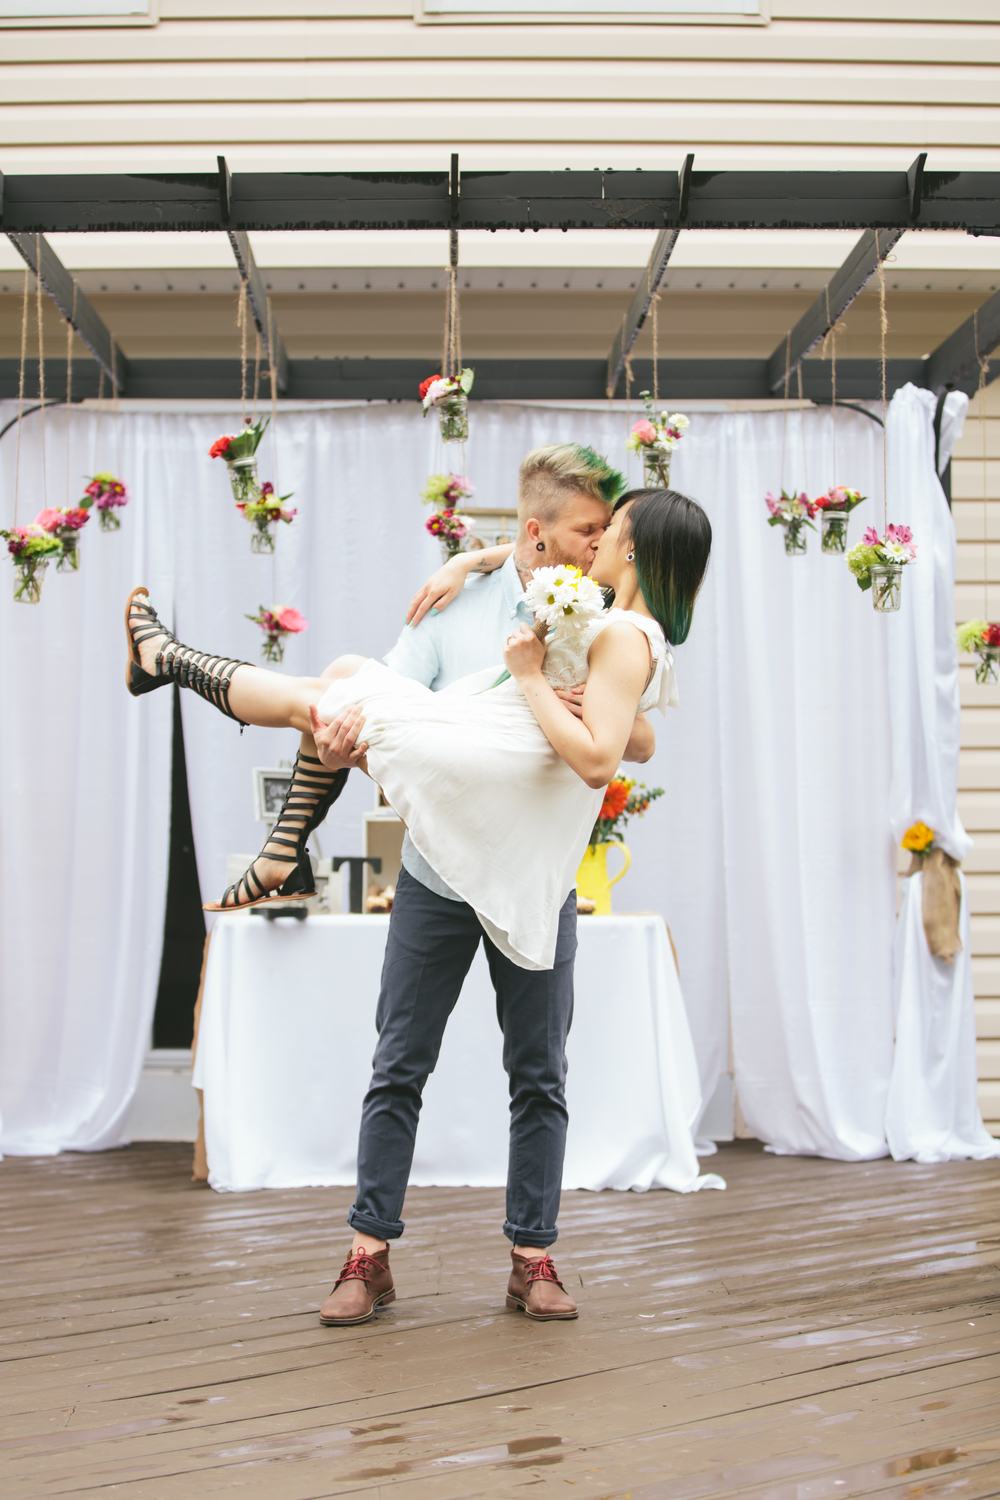 VnessPhotography_Richele&Thor_Wed-220.JPG